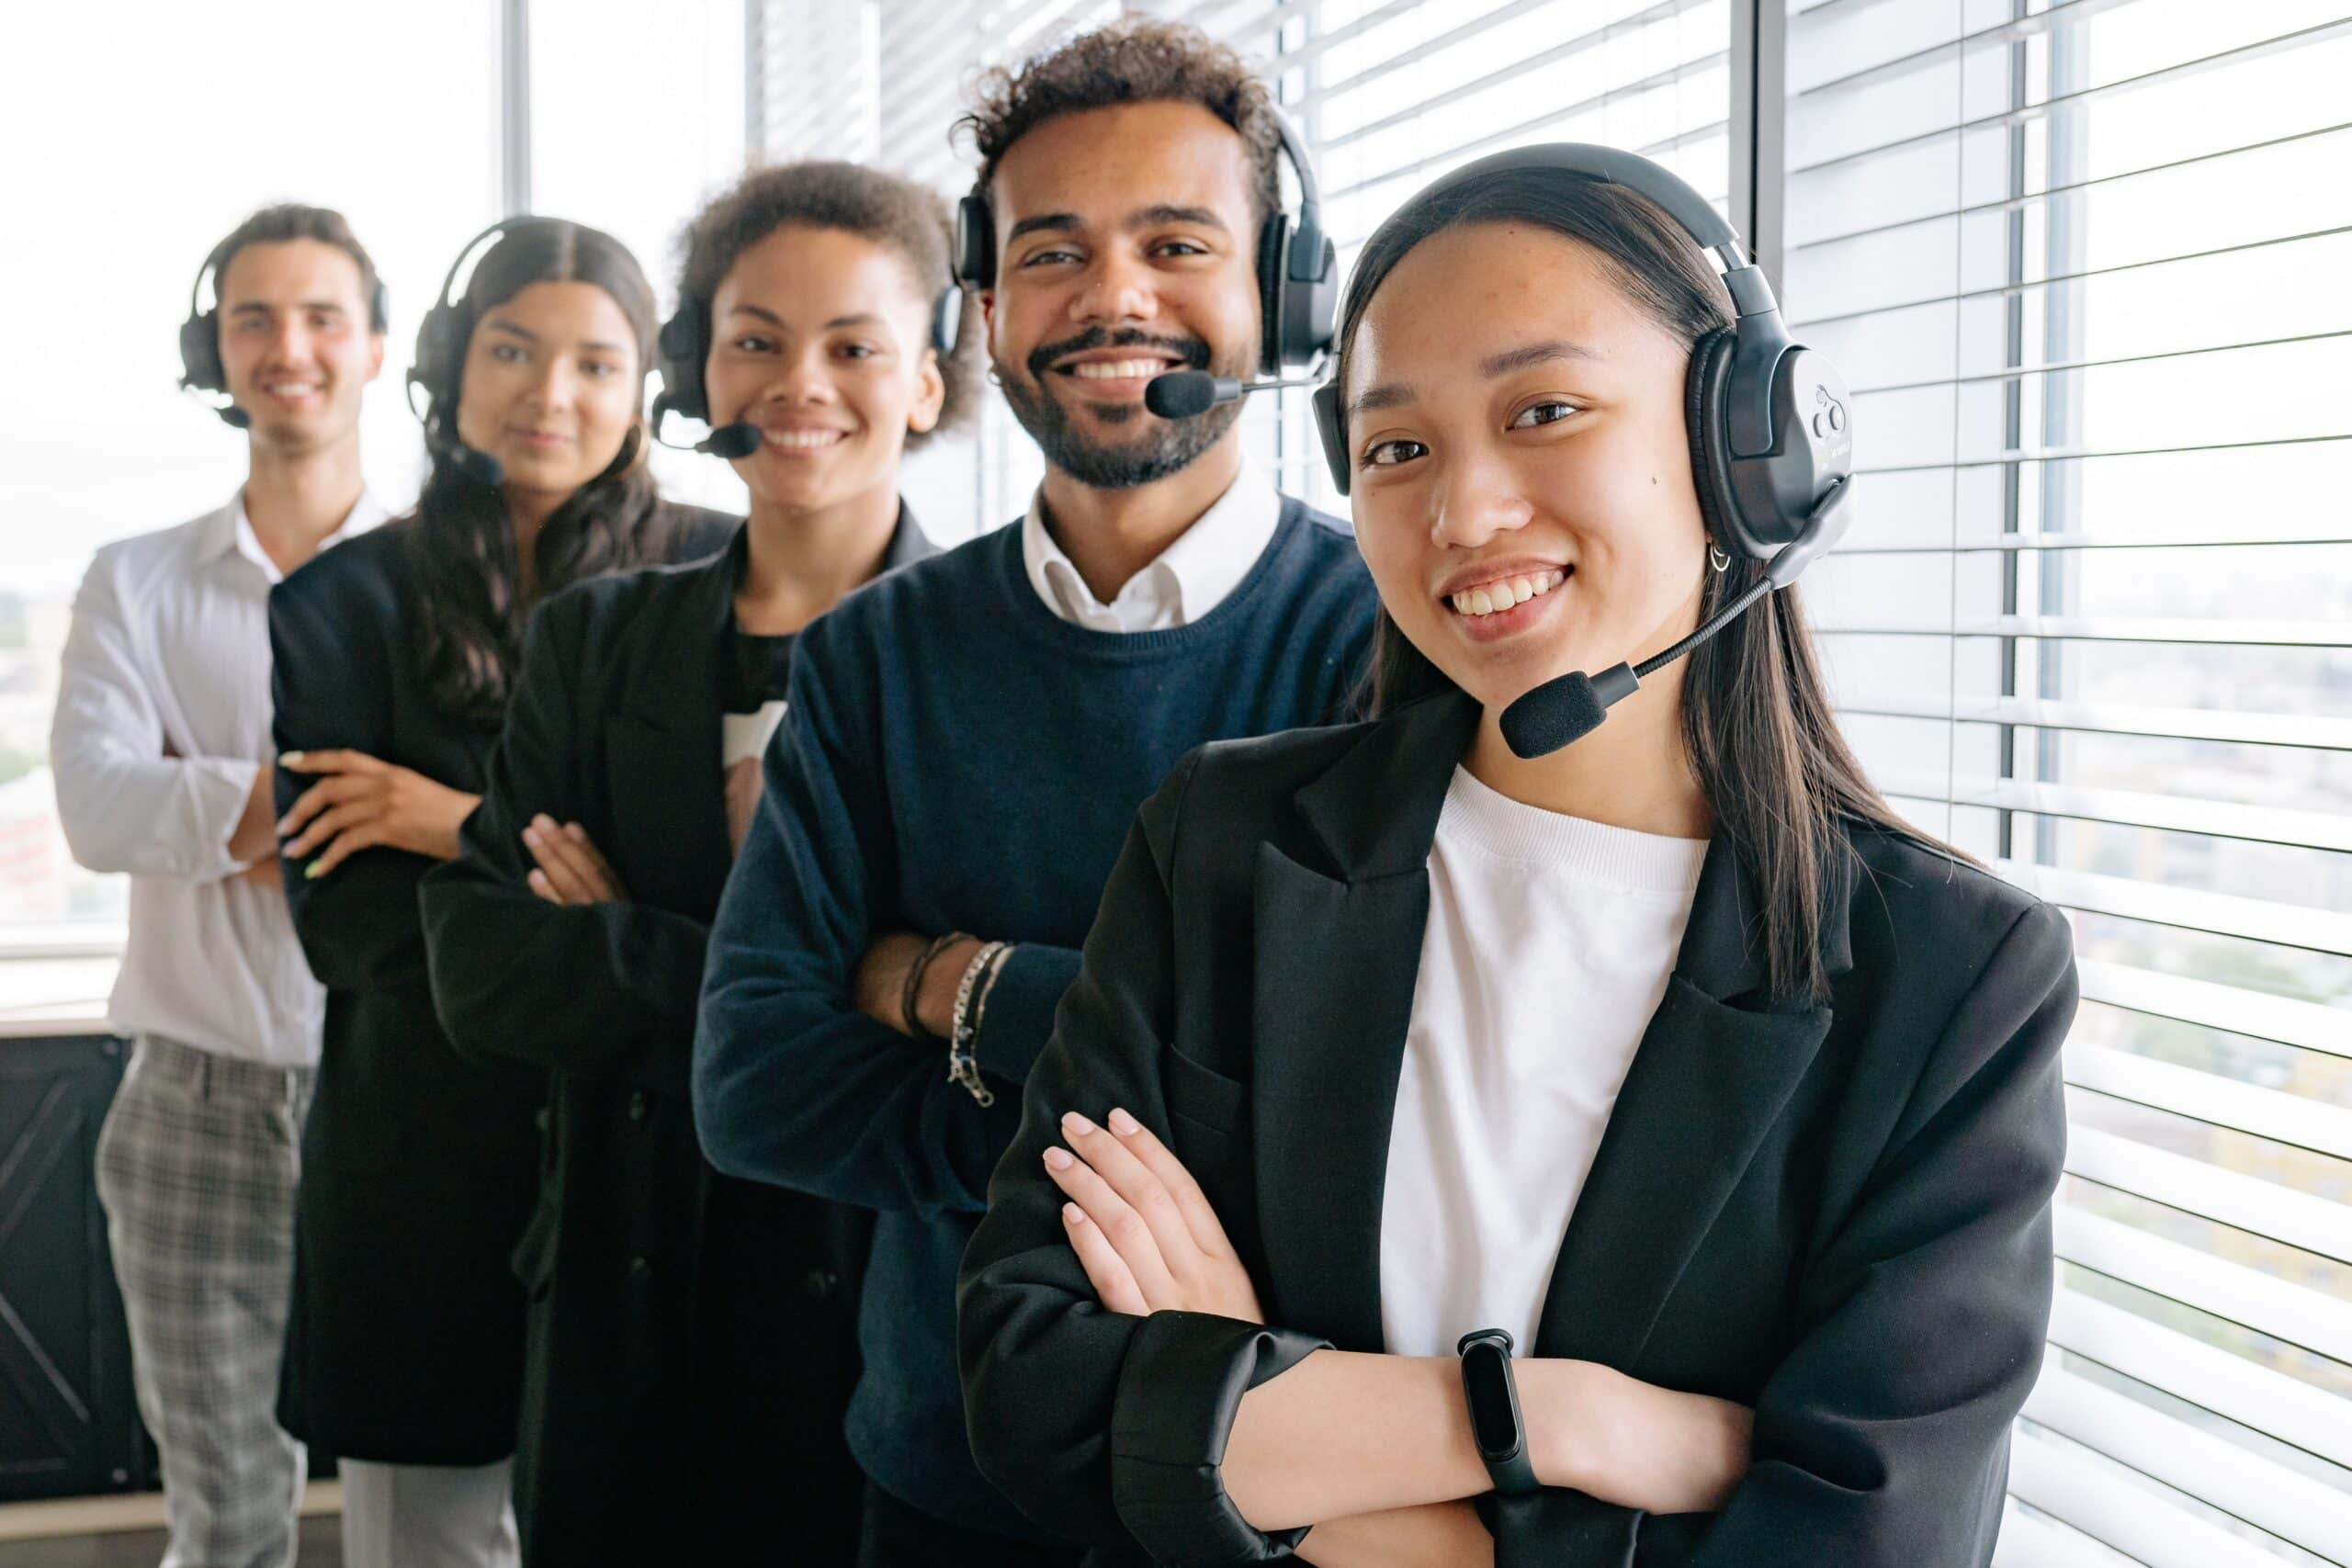 5 Customer Service people standing in a row with headsets on